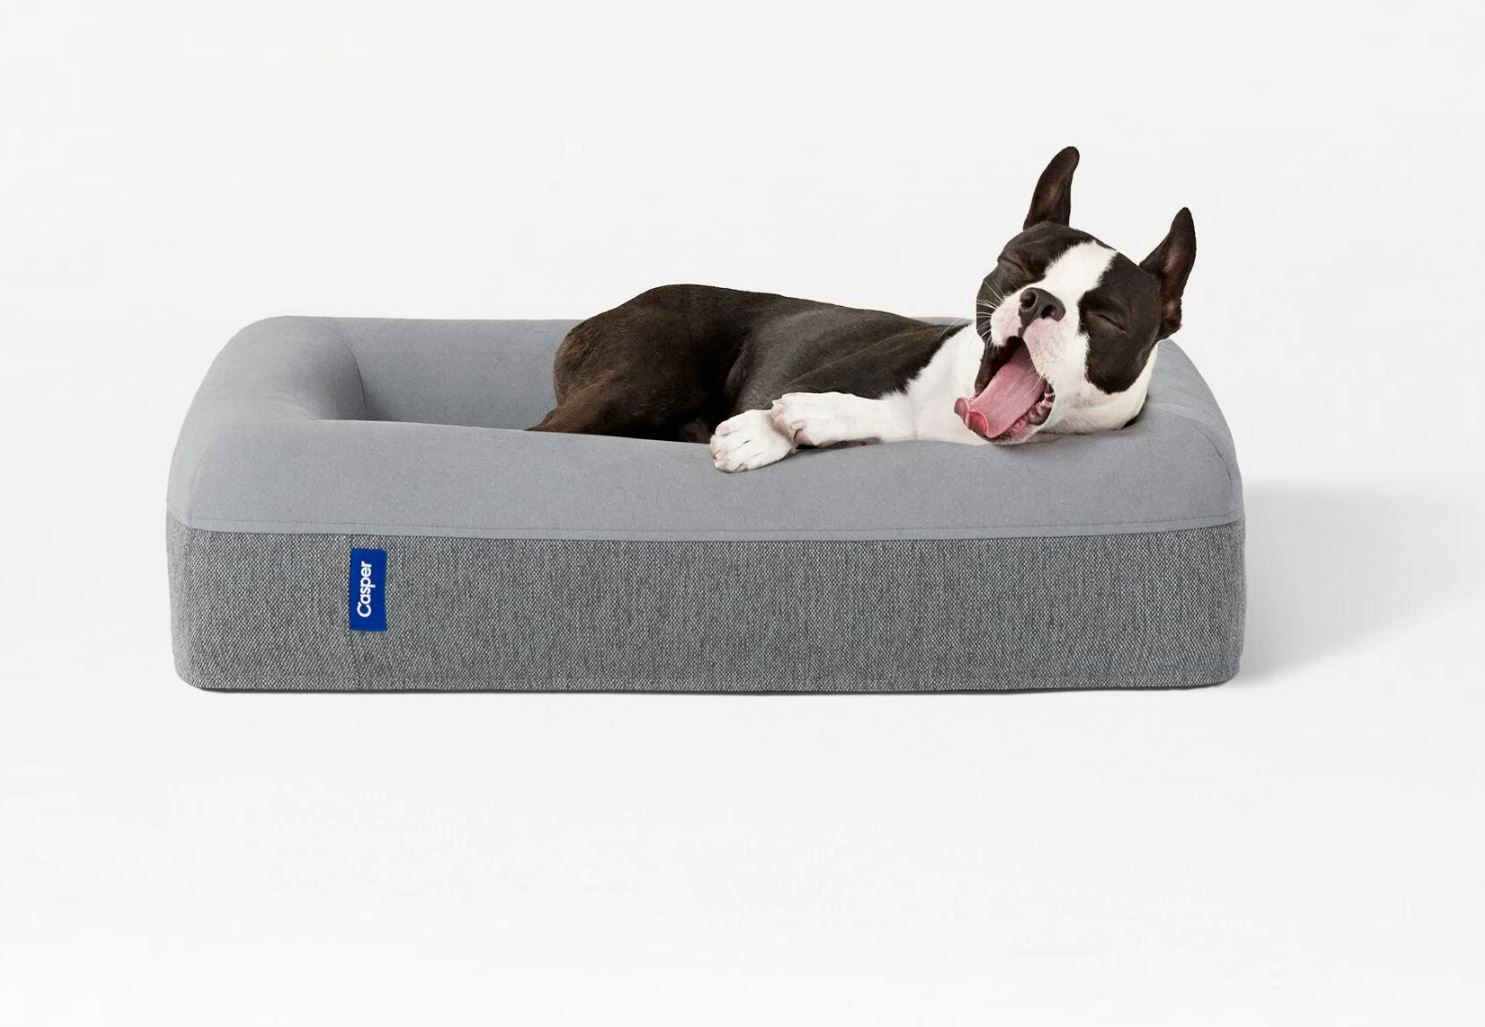 The Casper Dog Mattress is shaped much like a dog bed with